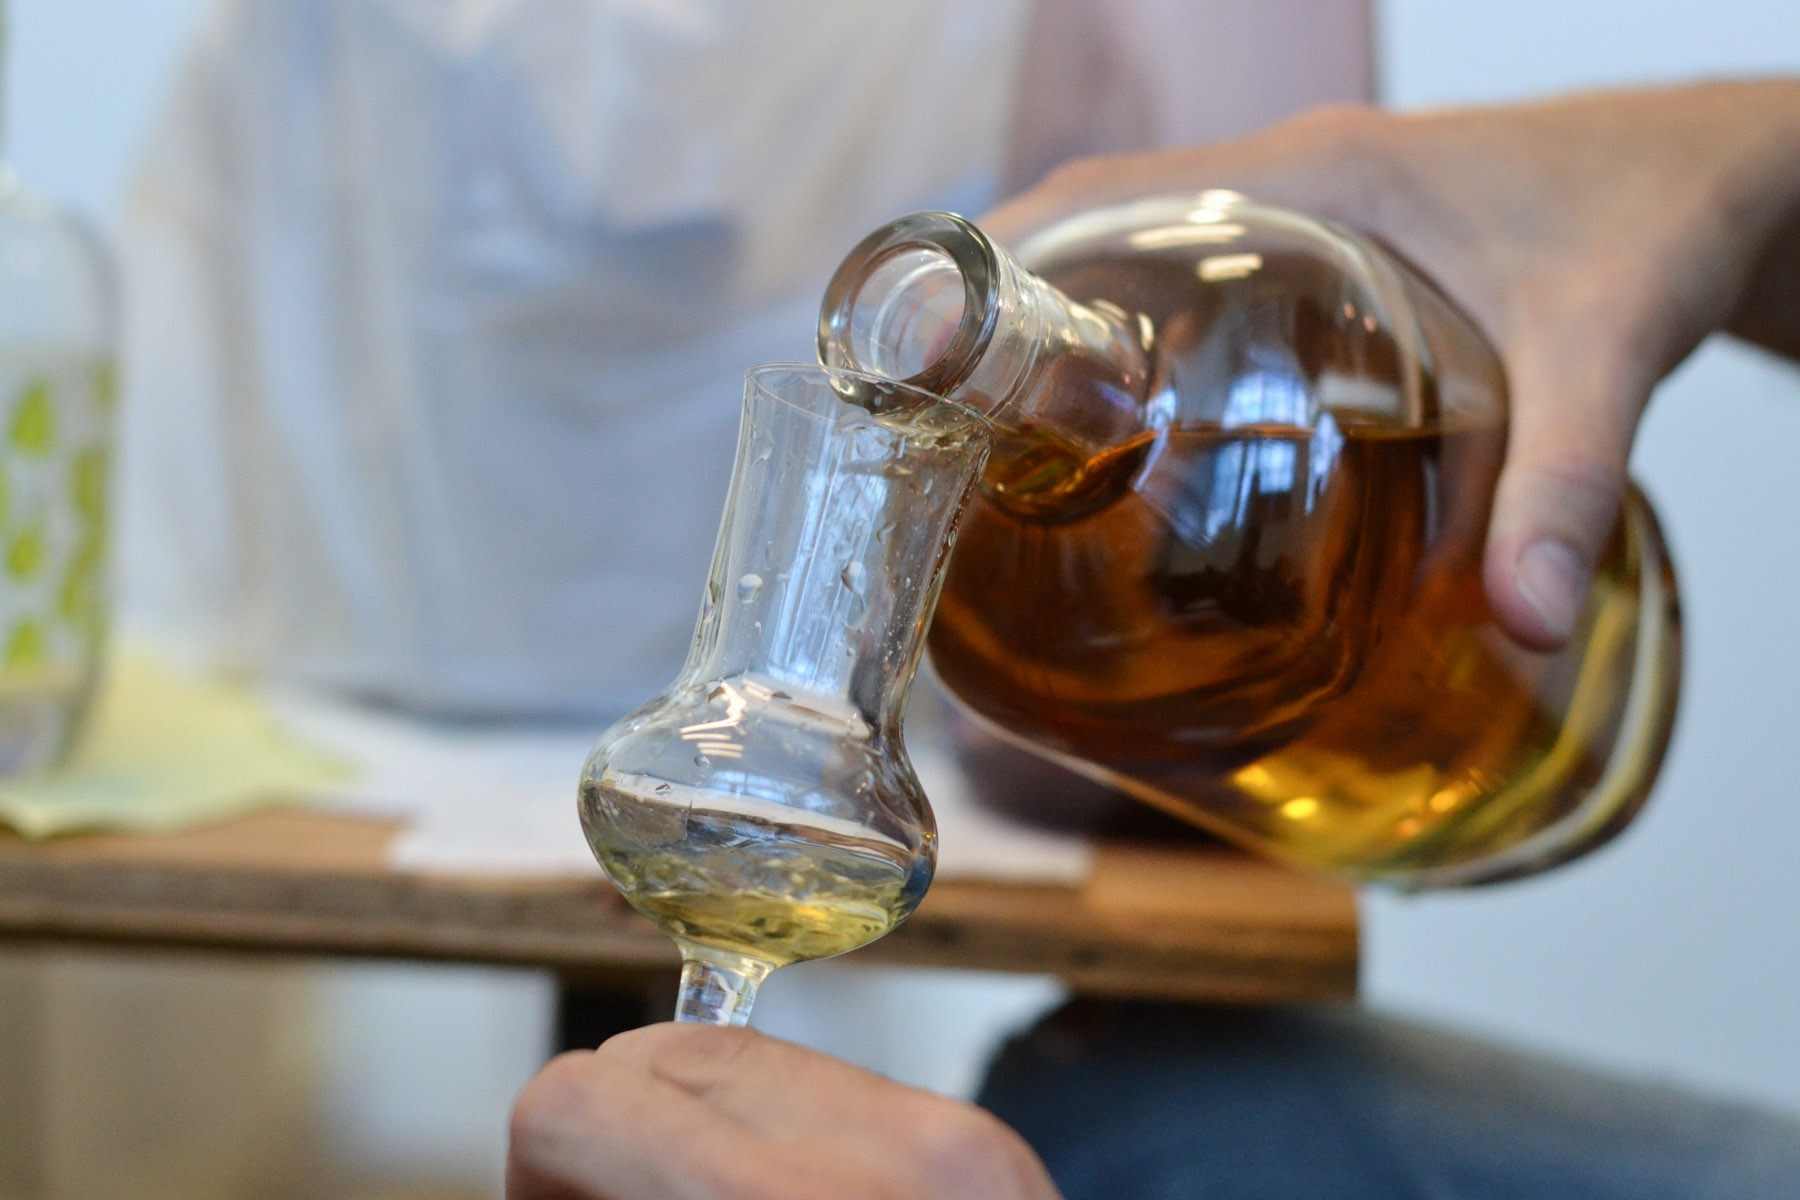 the-aged-apple-brandy-spends-time-in-used-brandy-barrels-used-whiskey-barrels-and-new-charred-oak-barrels_